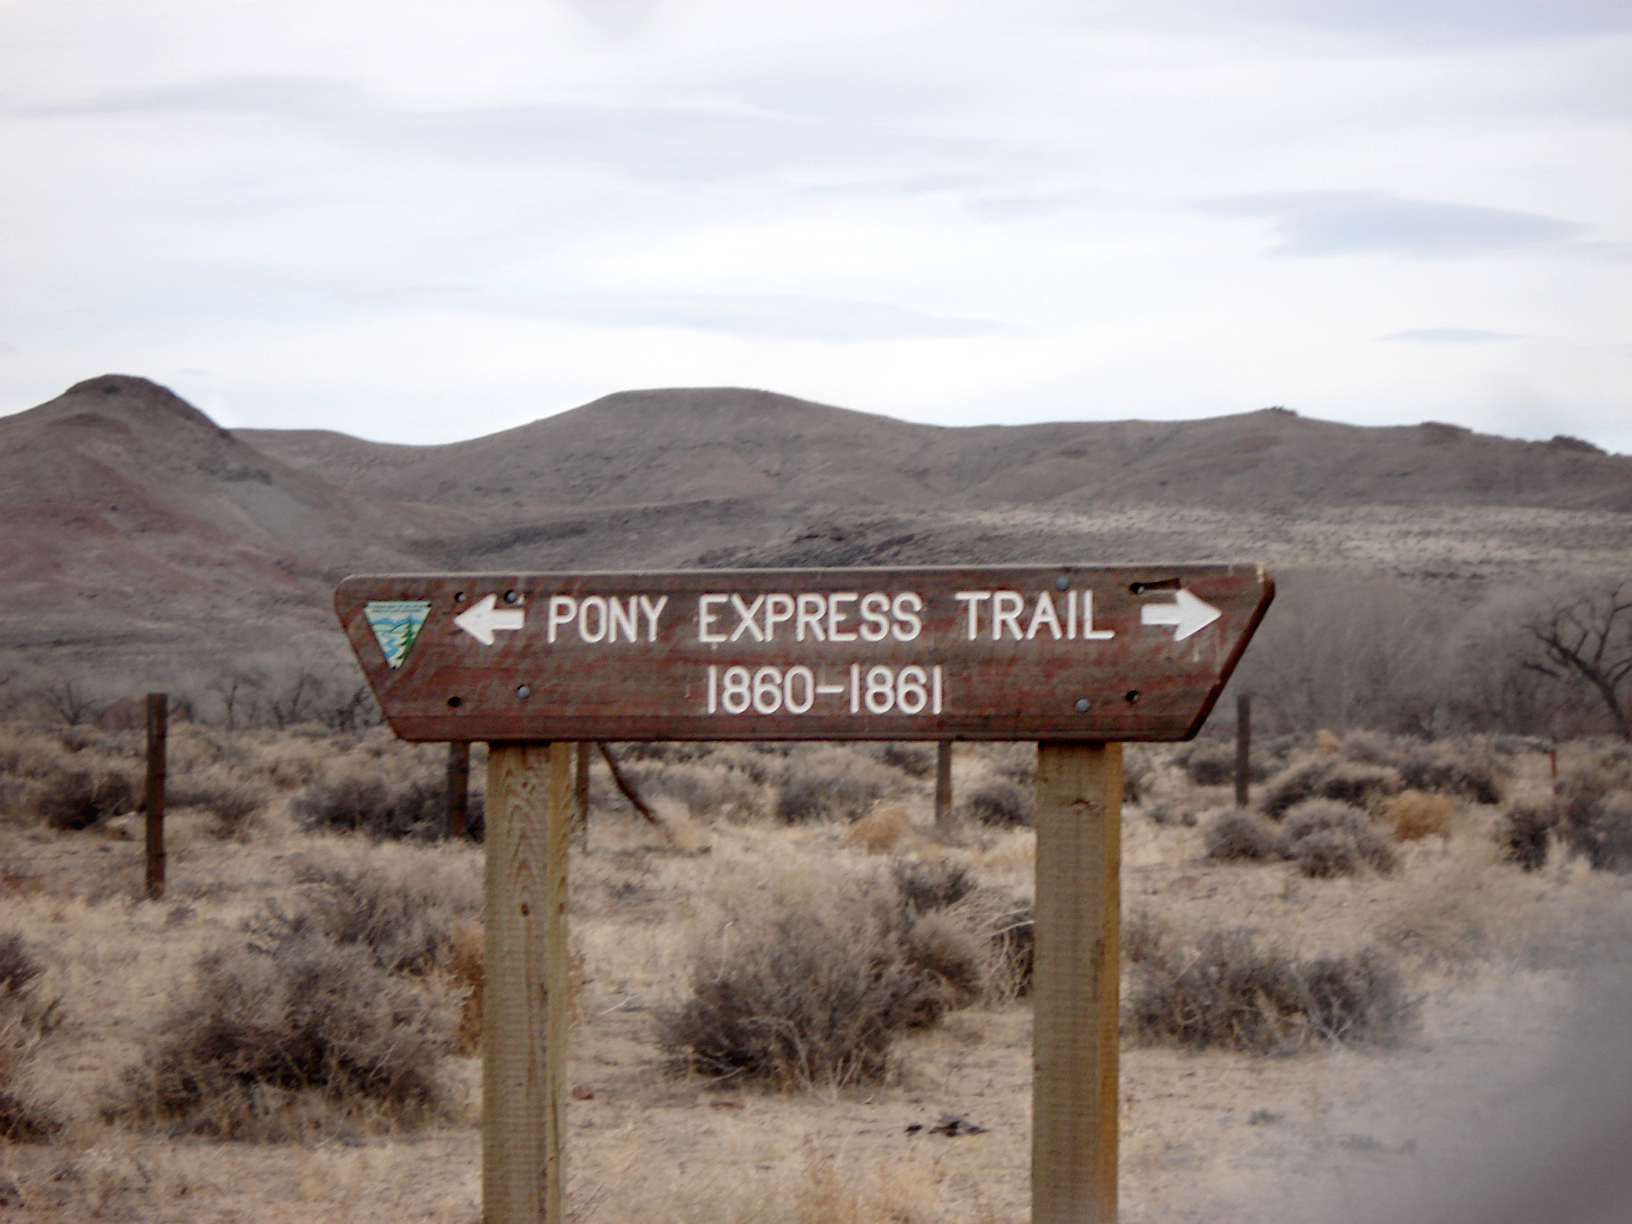 http://upload.wikimedia.org/wikipedia/commons/a/a3/Fort_Churchill_and_Sand_Springs_Toll_Road_Pony_Express_Sign.JPG